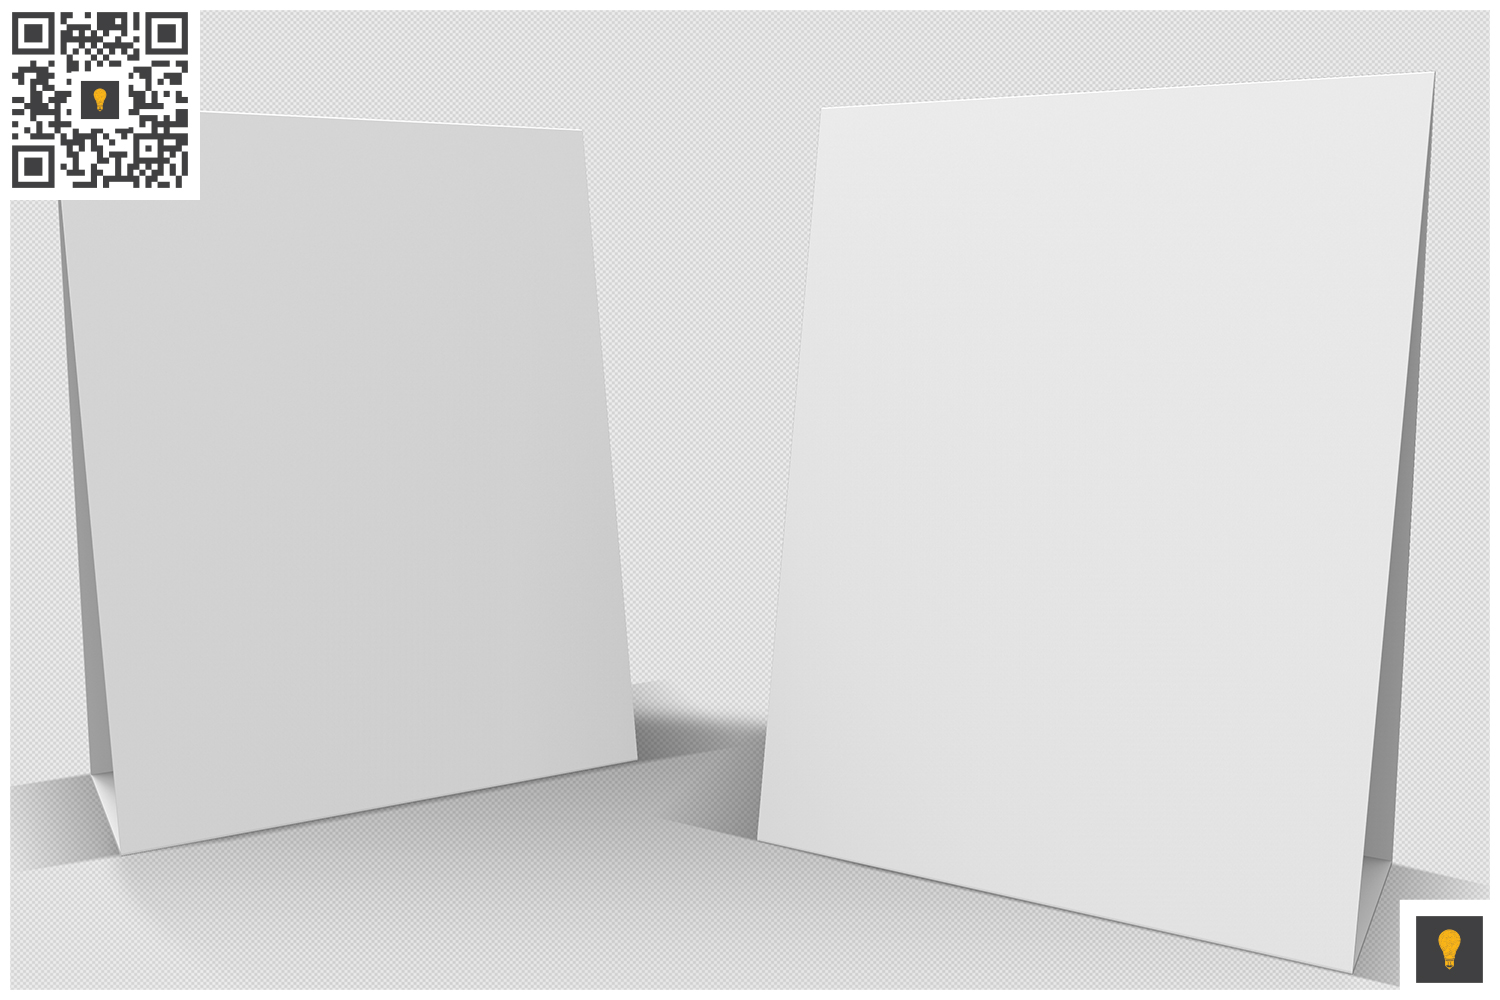 Table Tent 3D Render example image 4